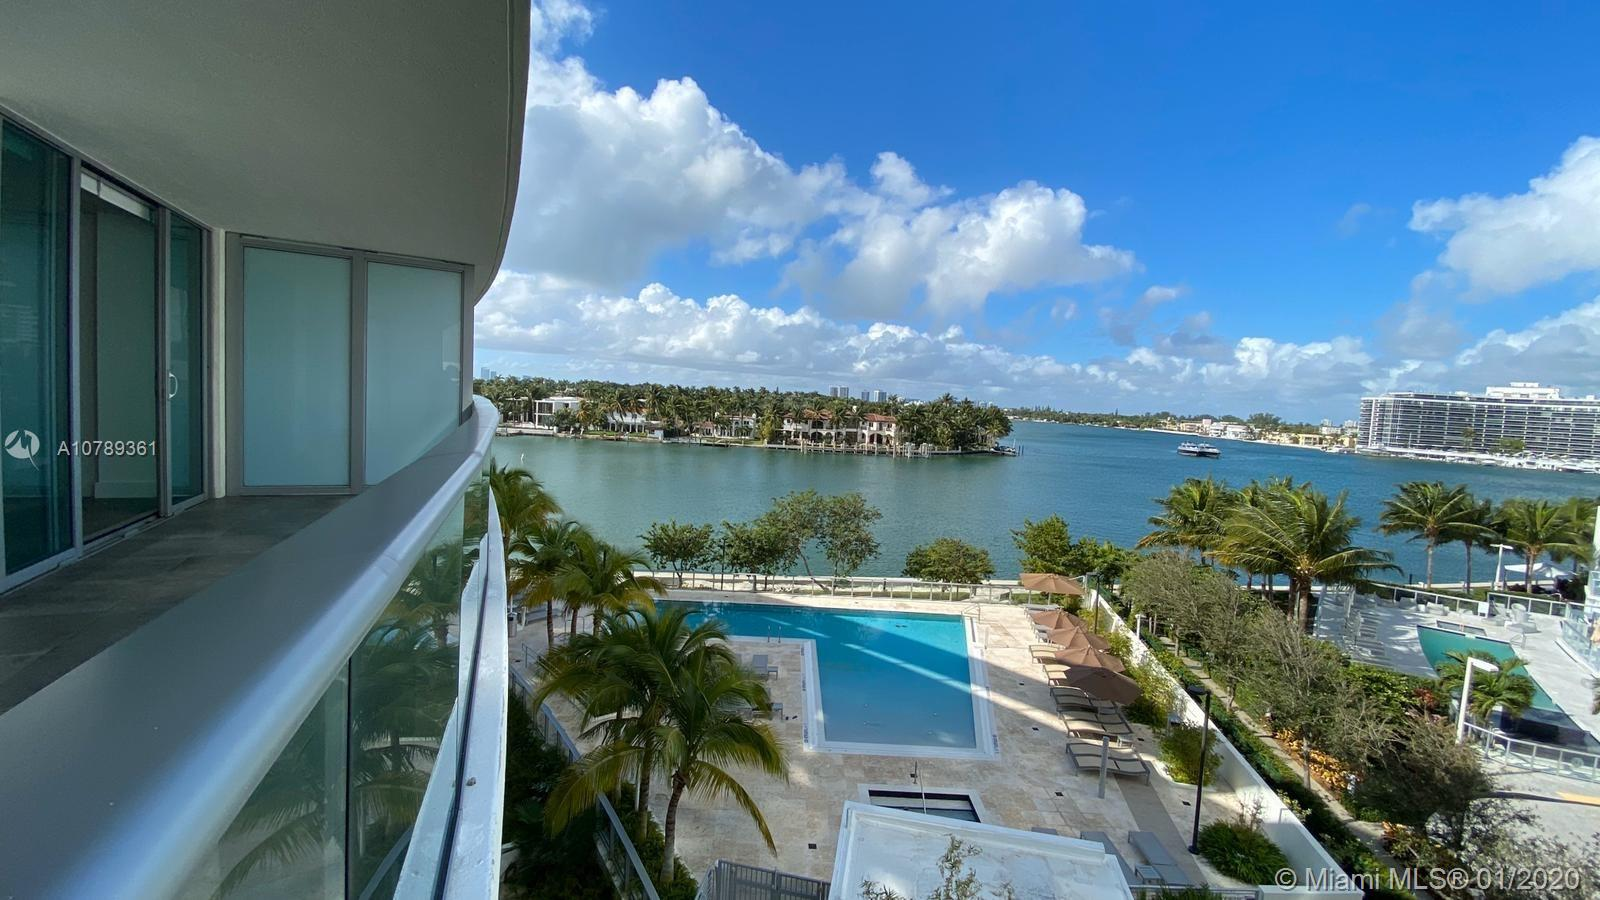 6620 Indian Creek Dr #514, Miami Beach FL 33141